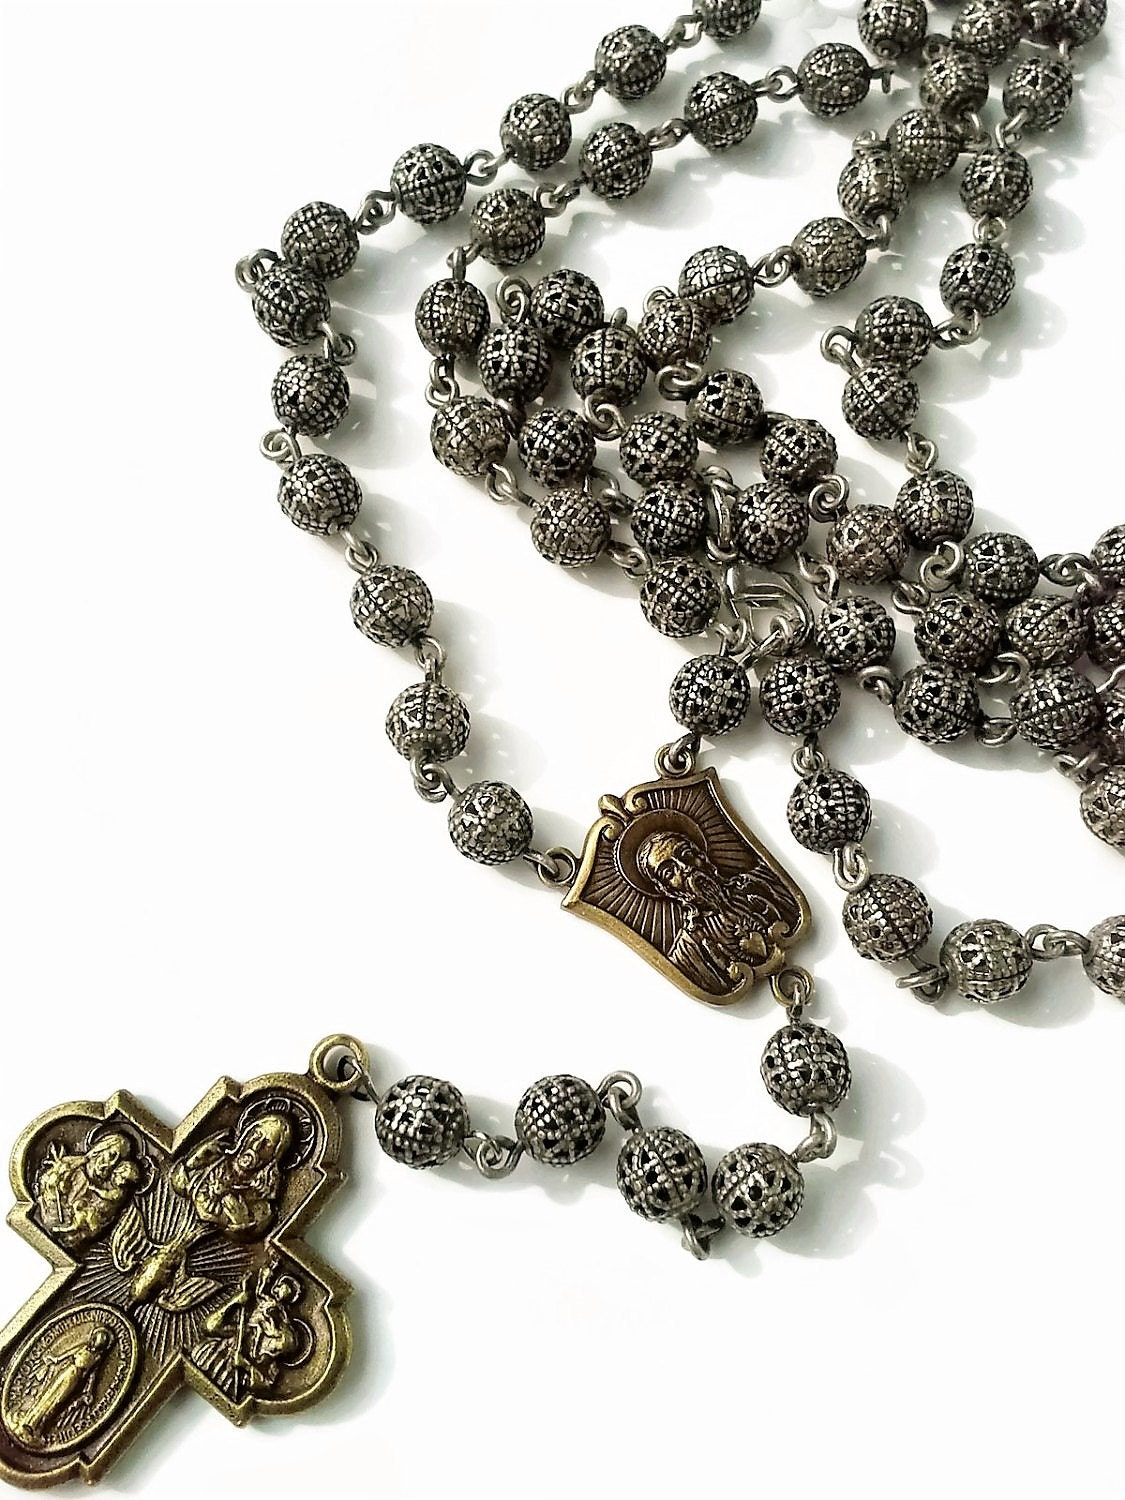 silver chain accessory beaded fashion religious photo en wood images bead catholic item wooden free cross jesus body plated necklace mary jewellery rosary christian jewelry